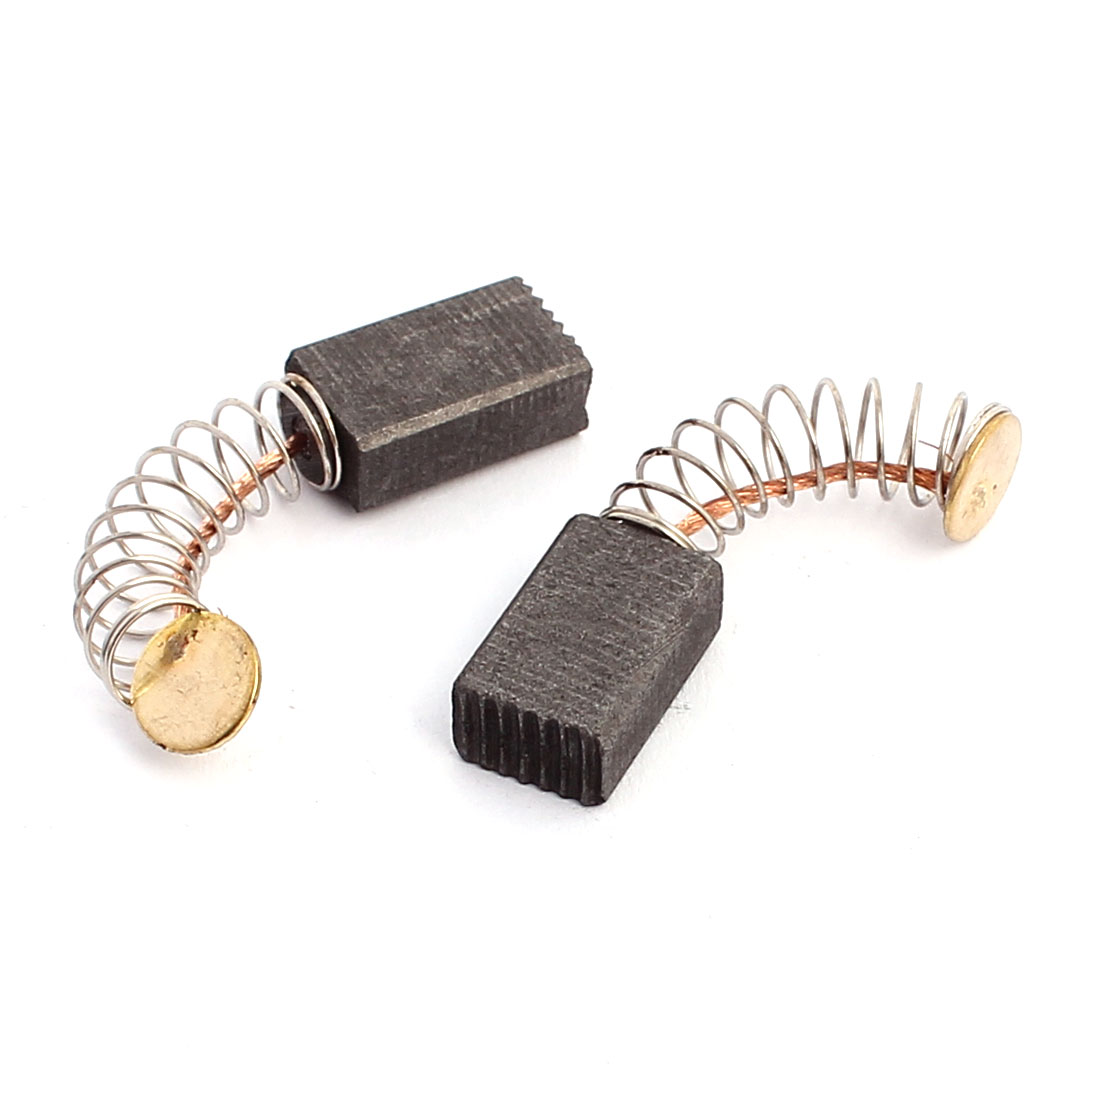 Pair Electric Drill Motor Rotary Power Tool Carbon Brush 5 x 8 x 12mm